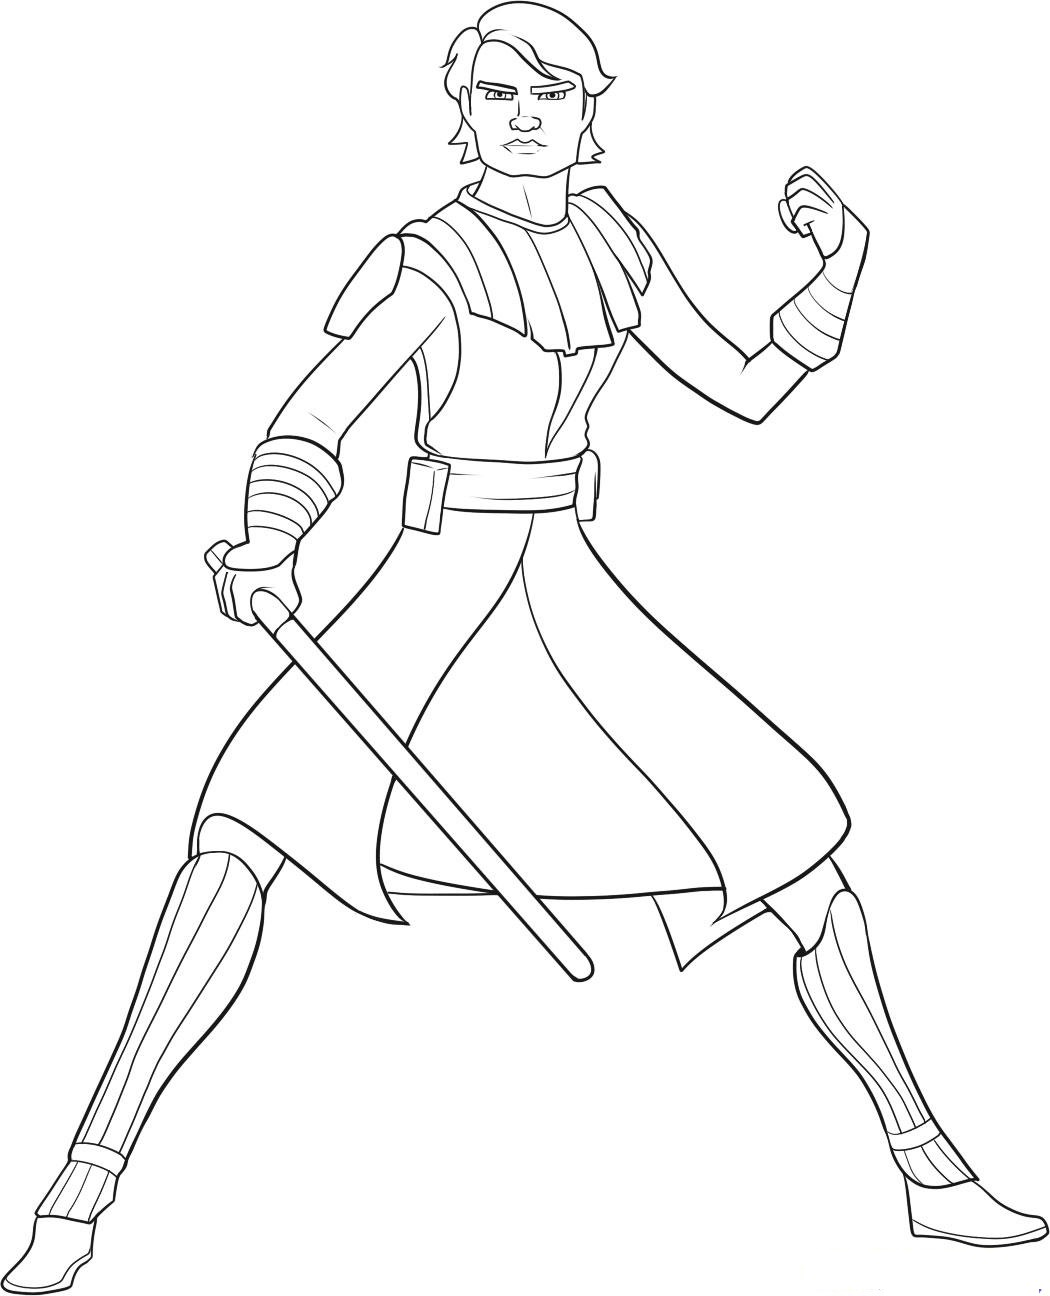 1050x1296 Star Wars Darth Vader Yoda Coloring Pages For Kids Storm Trooper